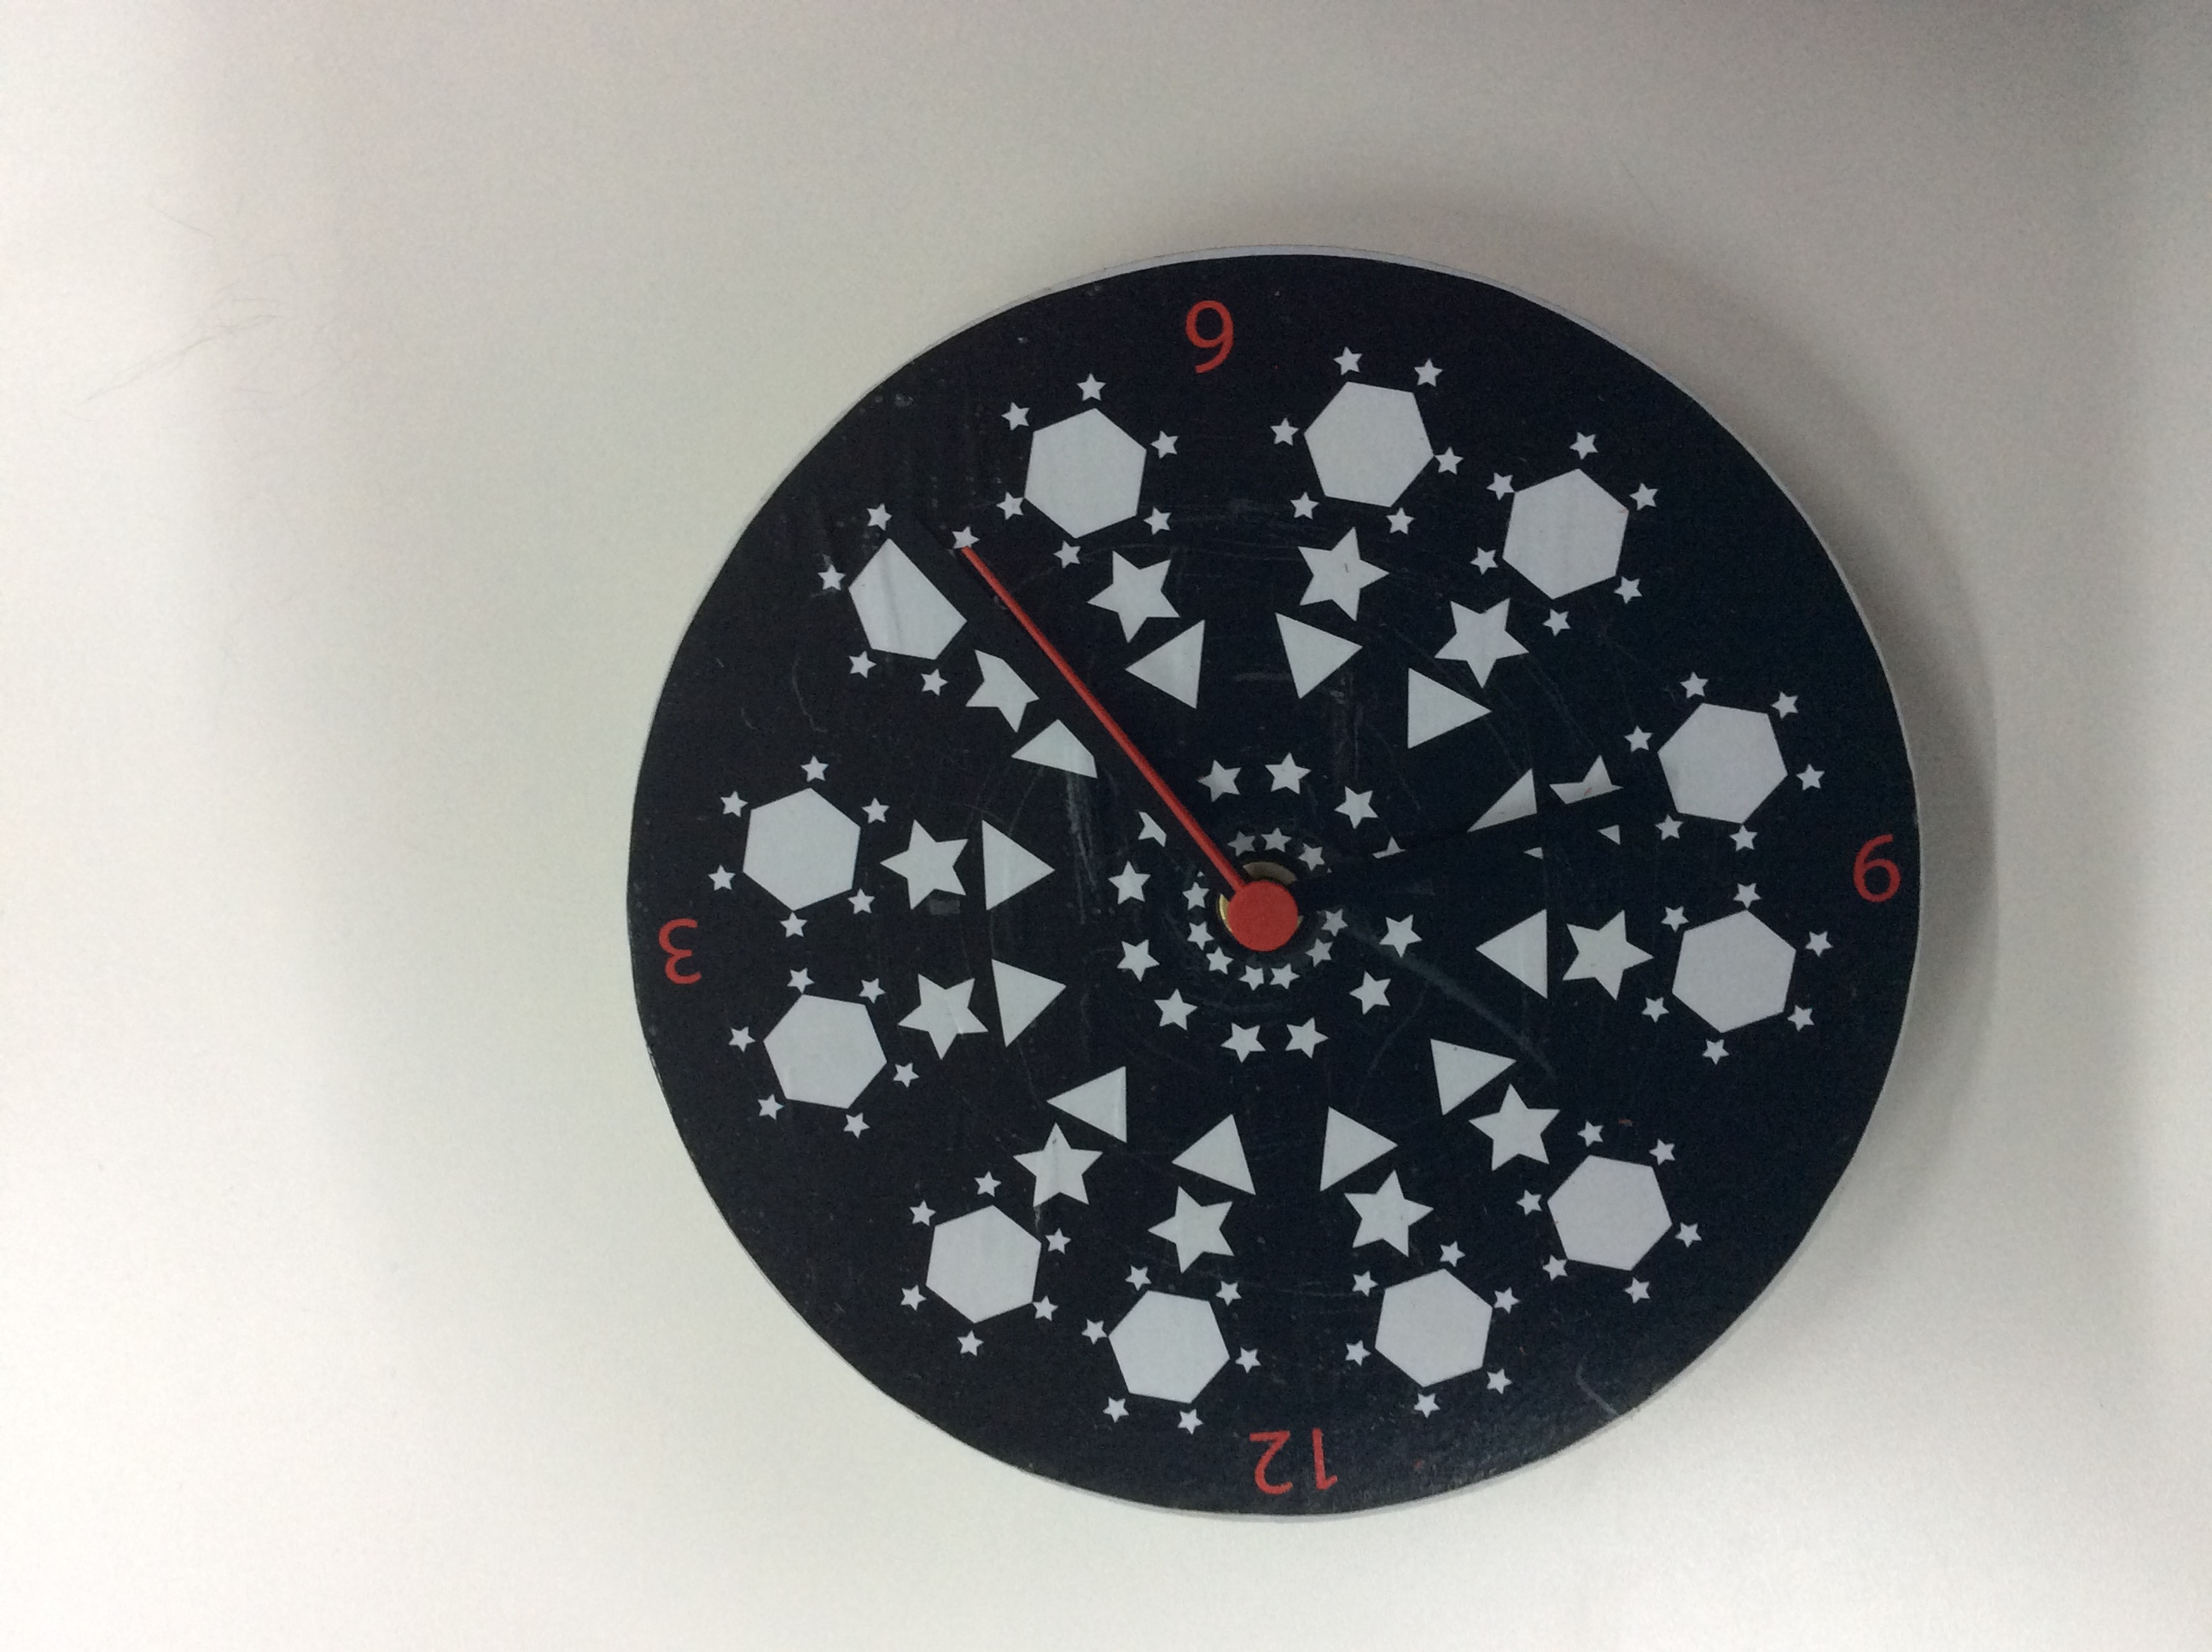 Grade 7 illustrator Clock Face